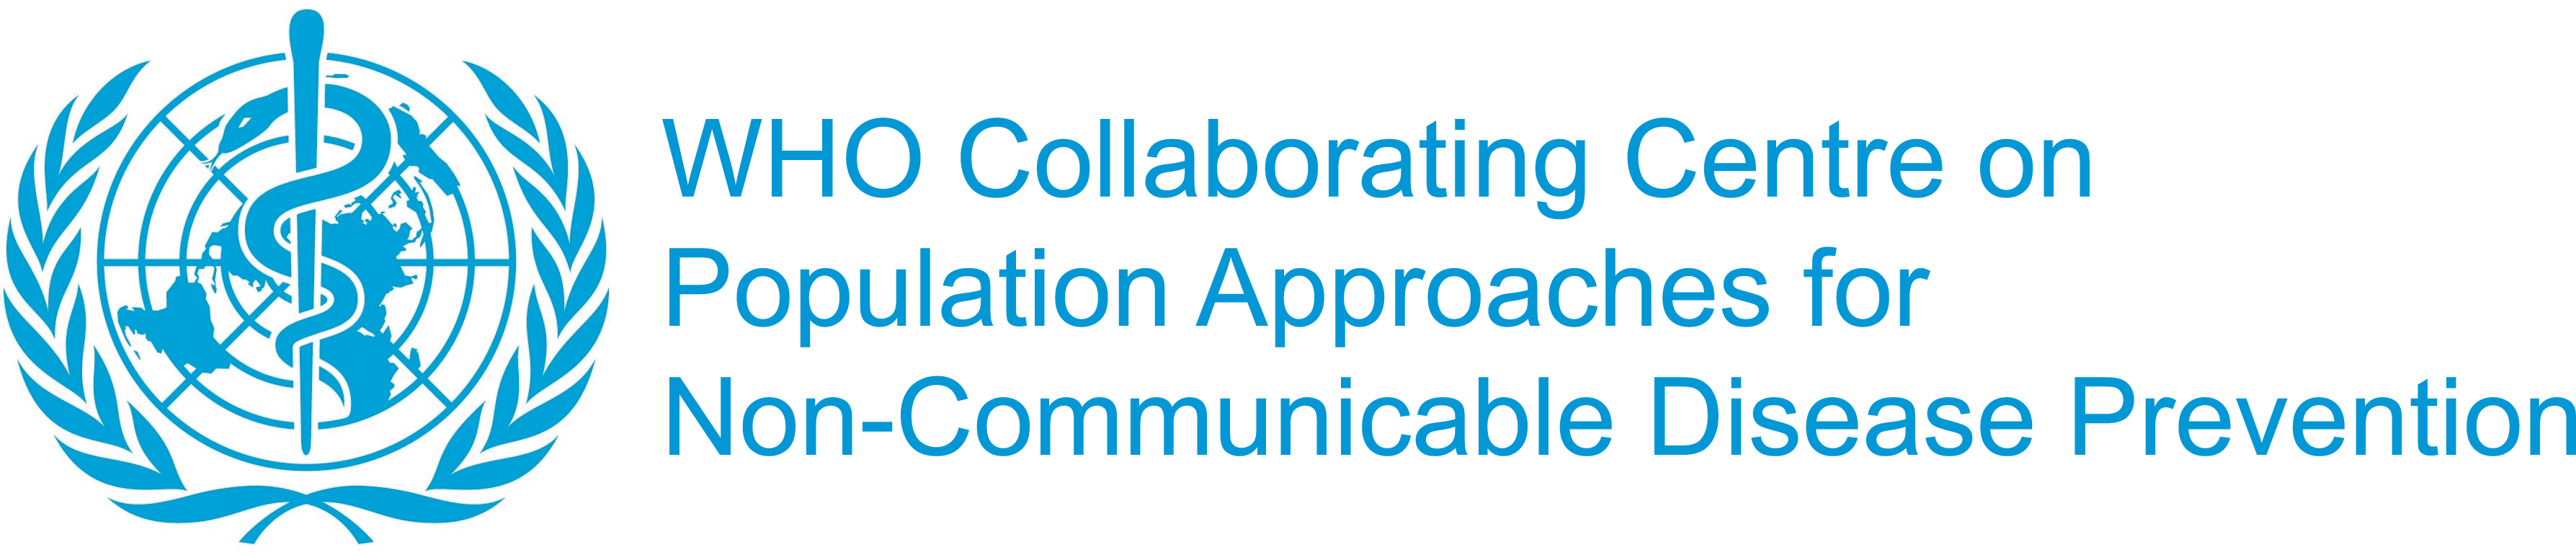 WHO Collaborating Centre on Population Approaches for Non –Communicable Disease Prevention